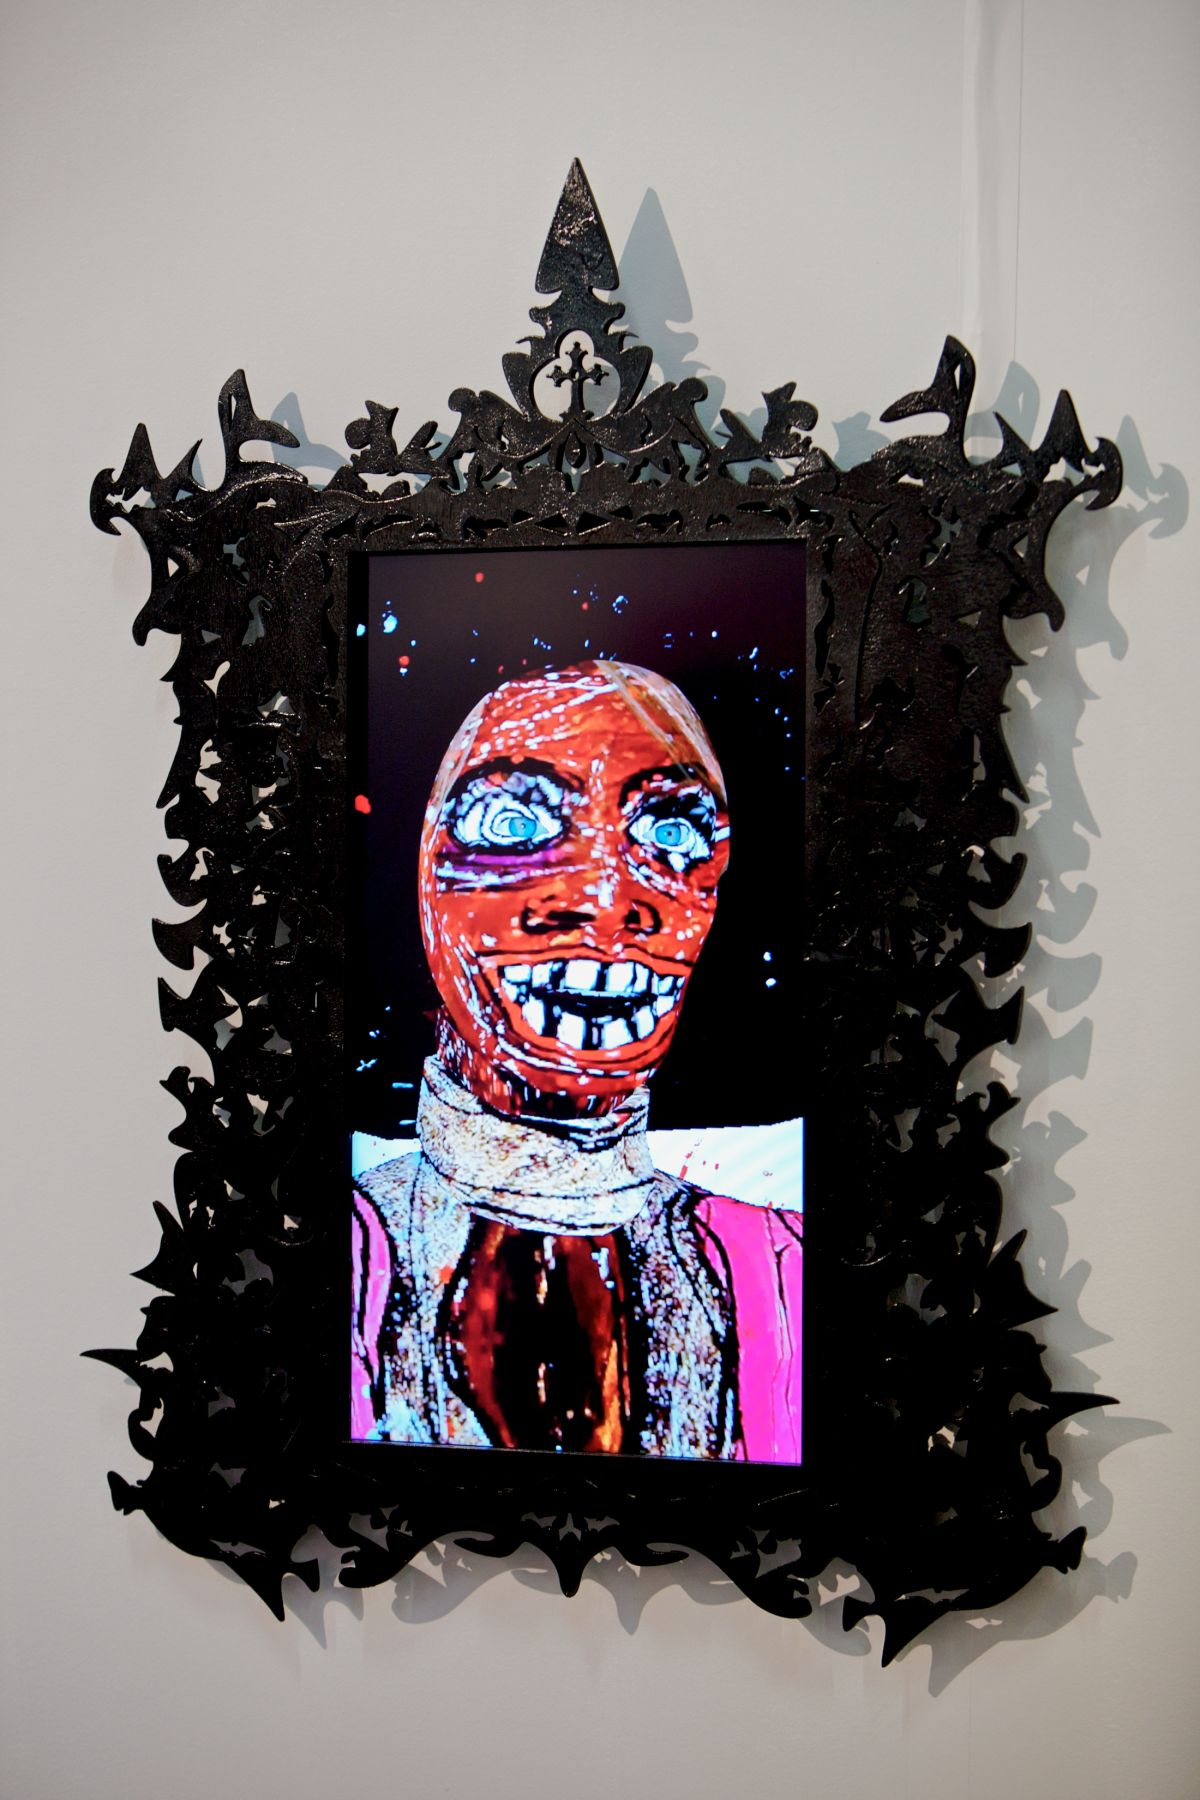 FEDERICO SOLMI_Dick Richman, Portrait of a Scam Artist  2011, video-animation with artist-designed frame and LCD panel, 45 x 30 inches